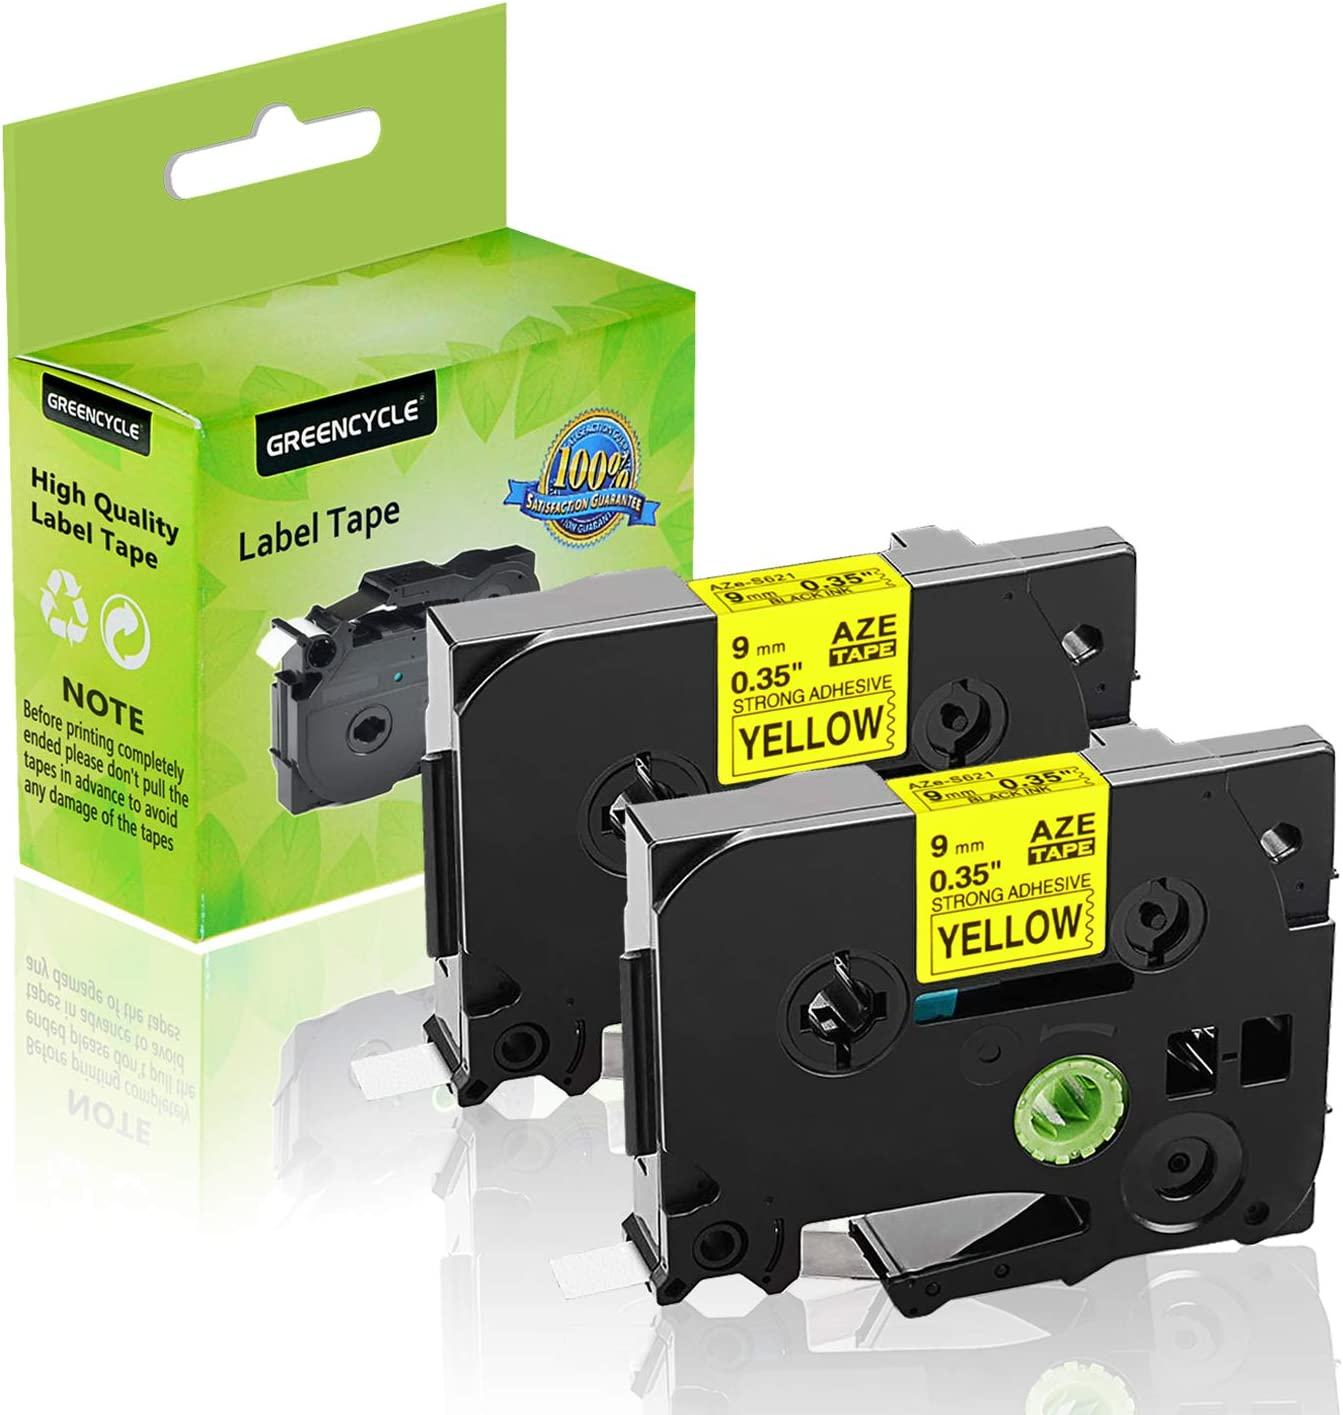 GREENCYCLE 2 Pack Compatible for Brother TZe-S621 TZeS621 TZ-S621 Black on Yellow Laminated Extra Strength Label Tapes use with P-Touch PT-D210 D400AD P900W P750W Label Makers 3//8 9mm X 26.2ft 8m